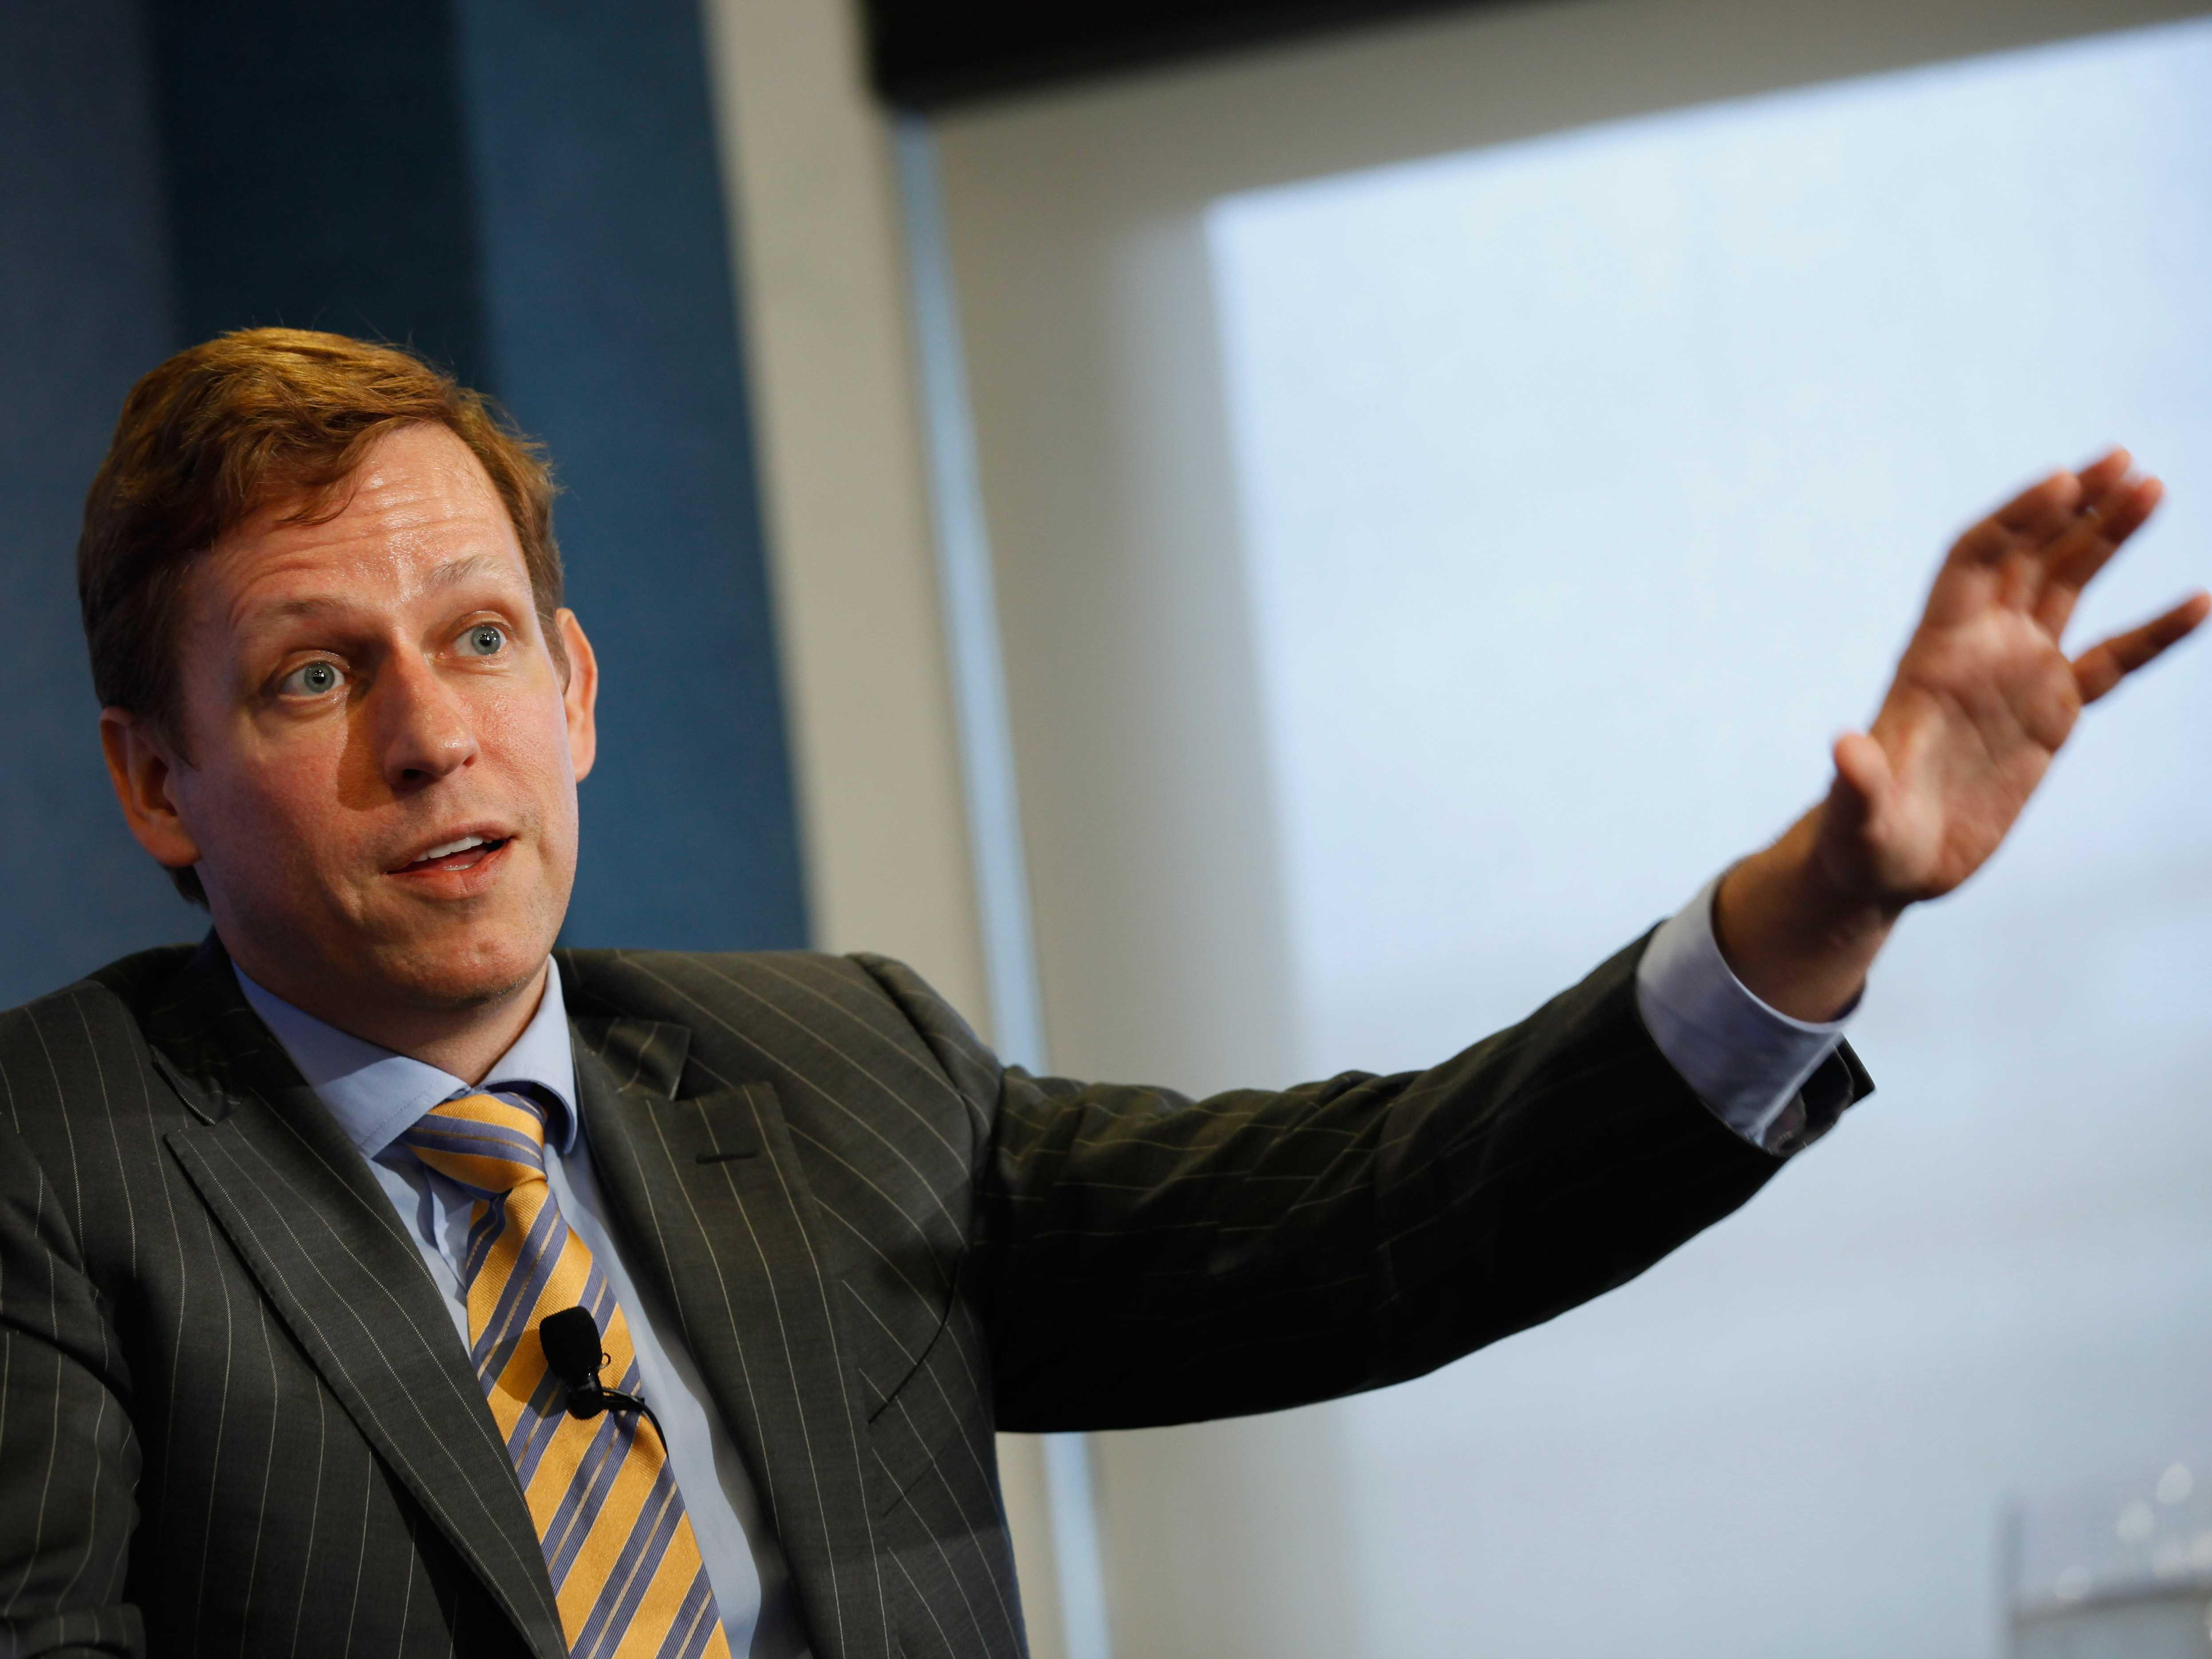 The amazing story of how a complete stranger convinced Peter Thiel to let him invest in PayPal